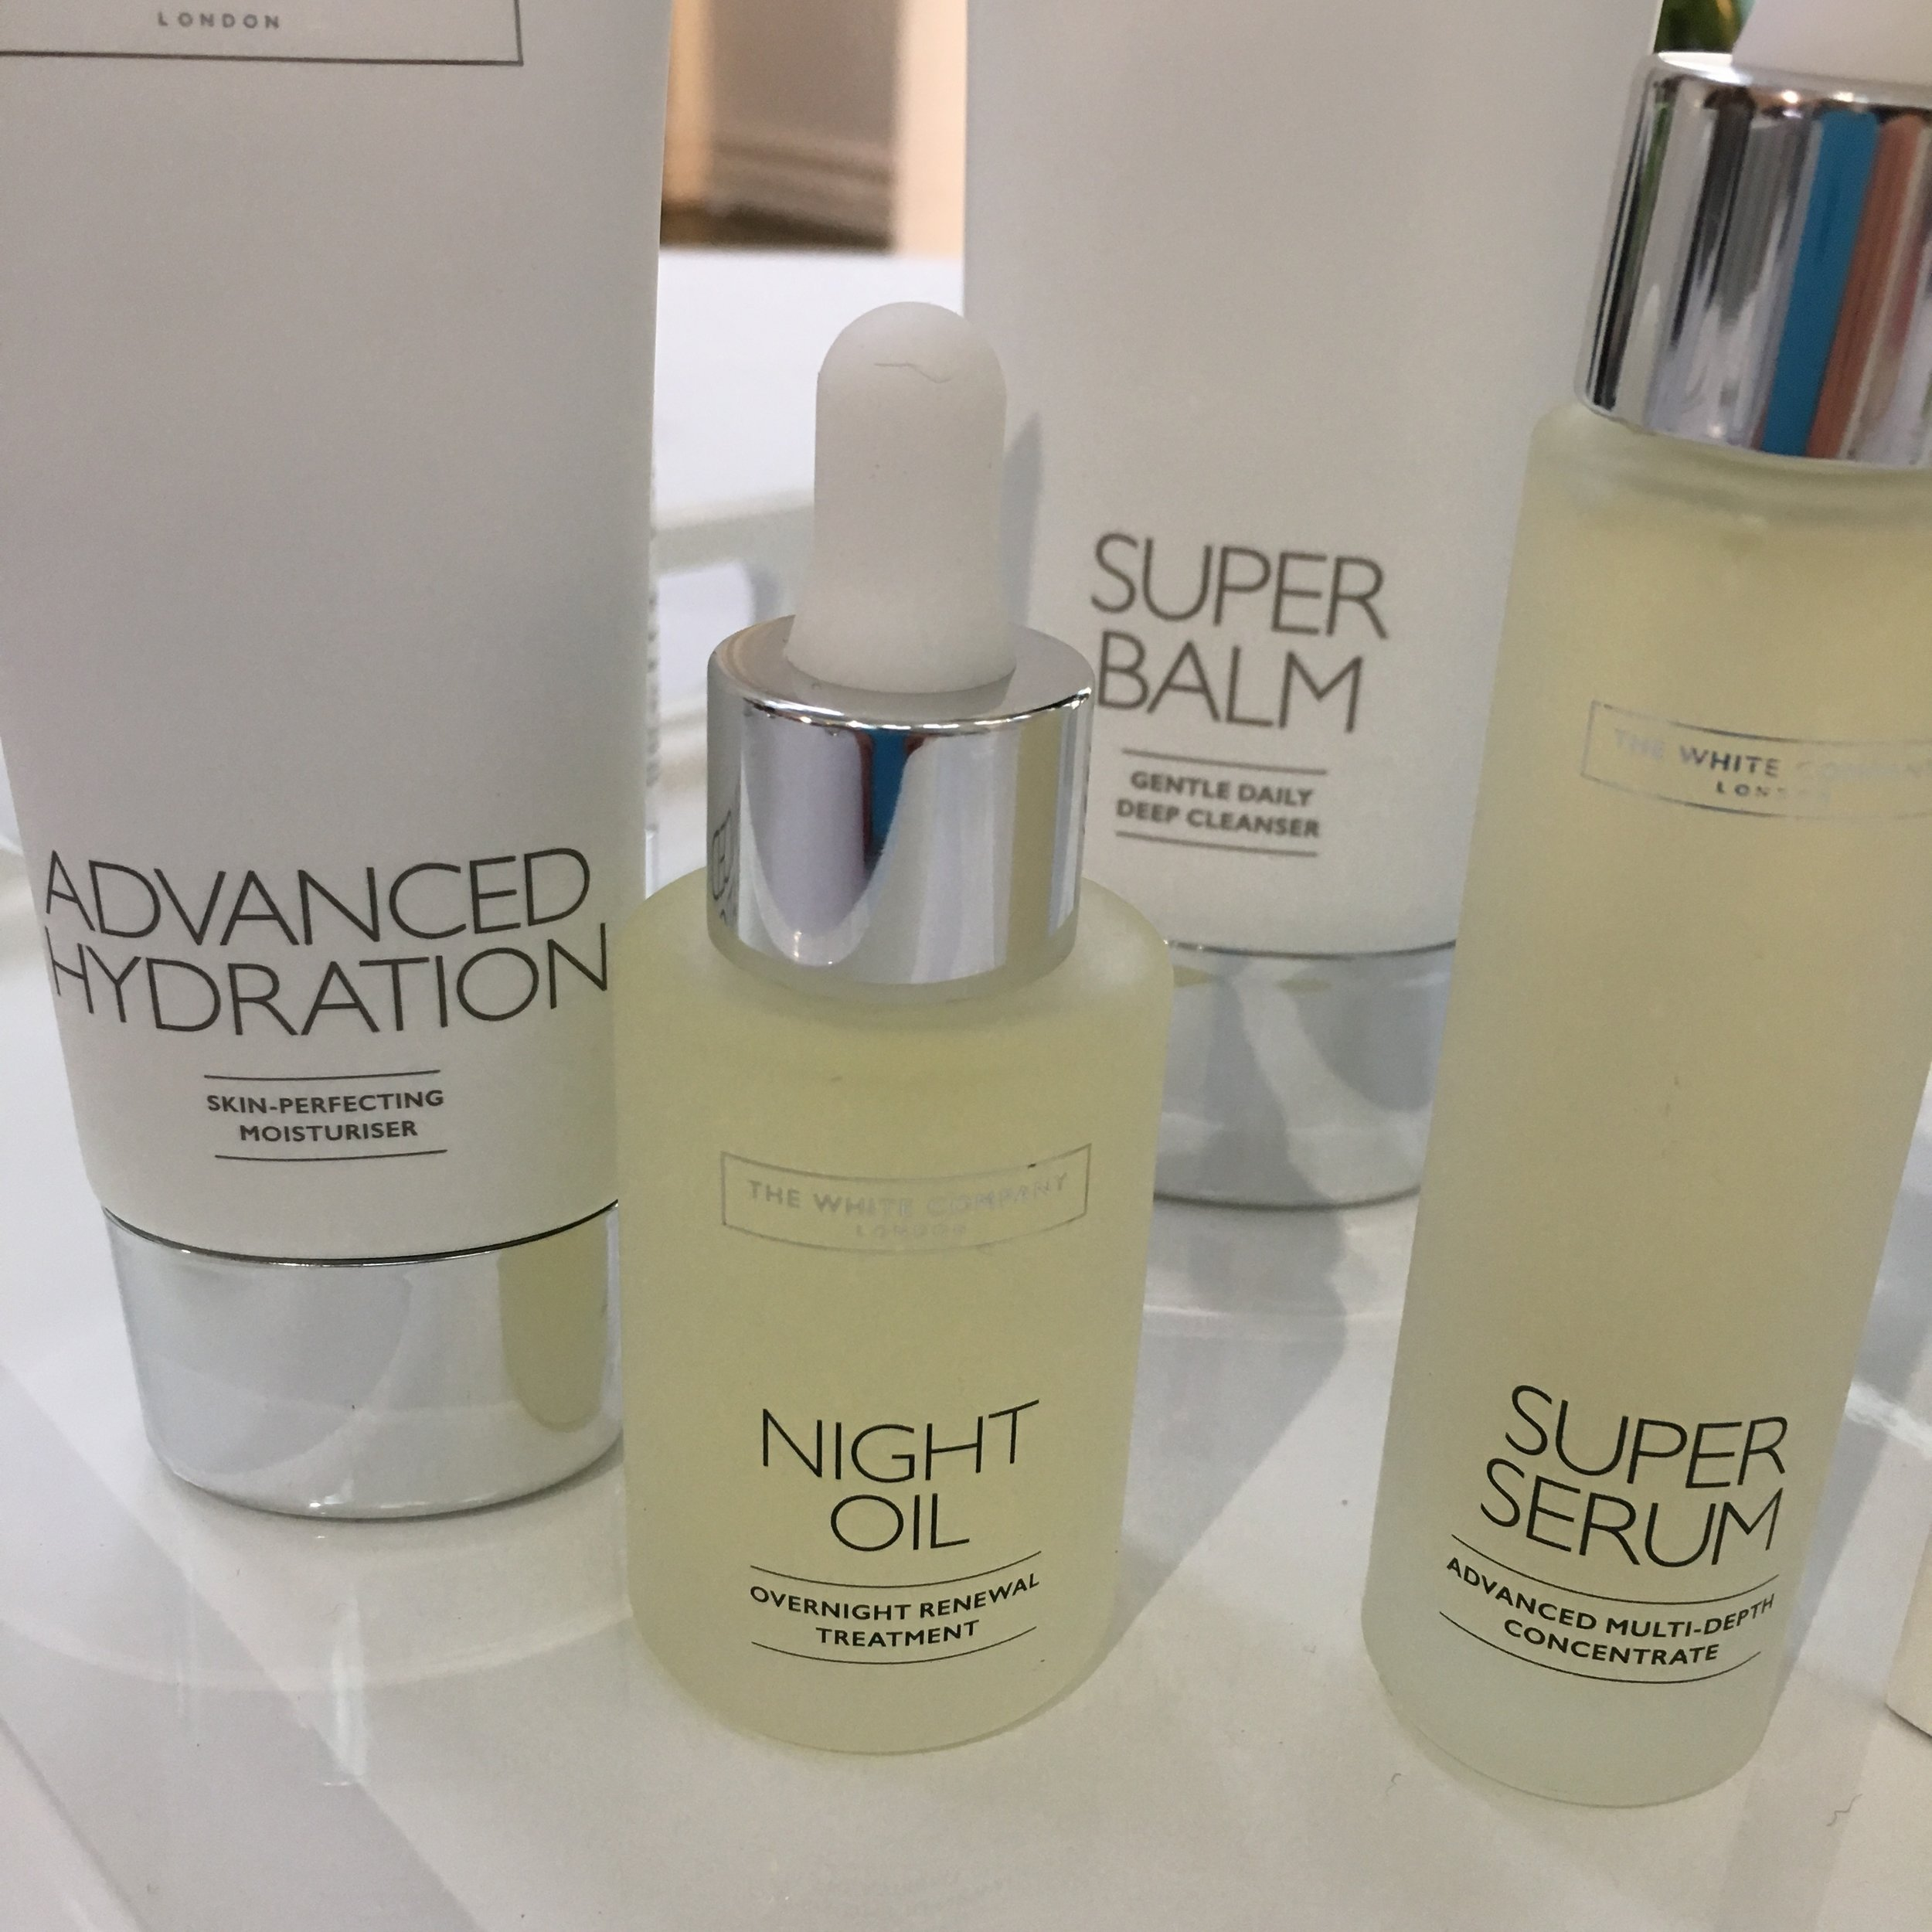 There are just five products in The White Company facial skincare range - these plus the eye cream